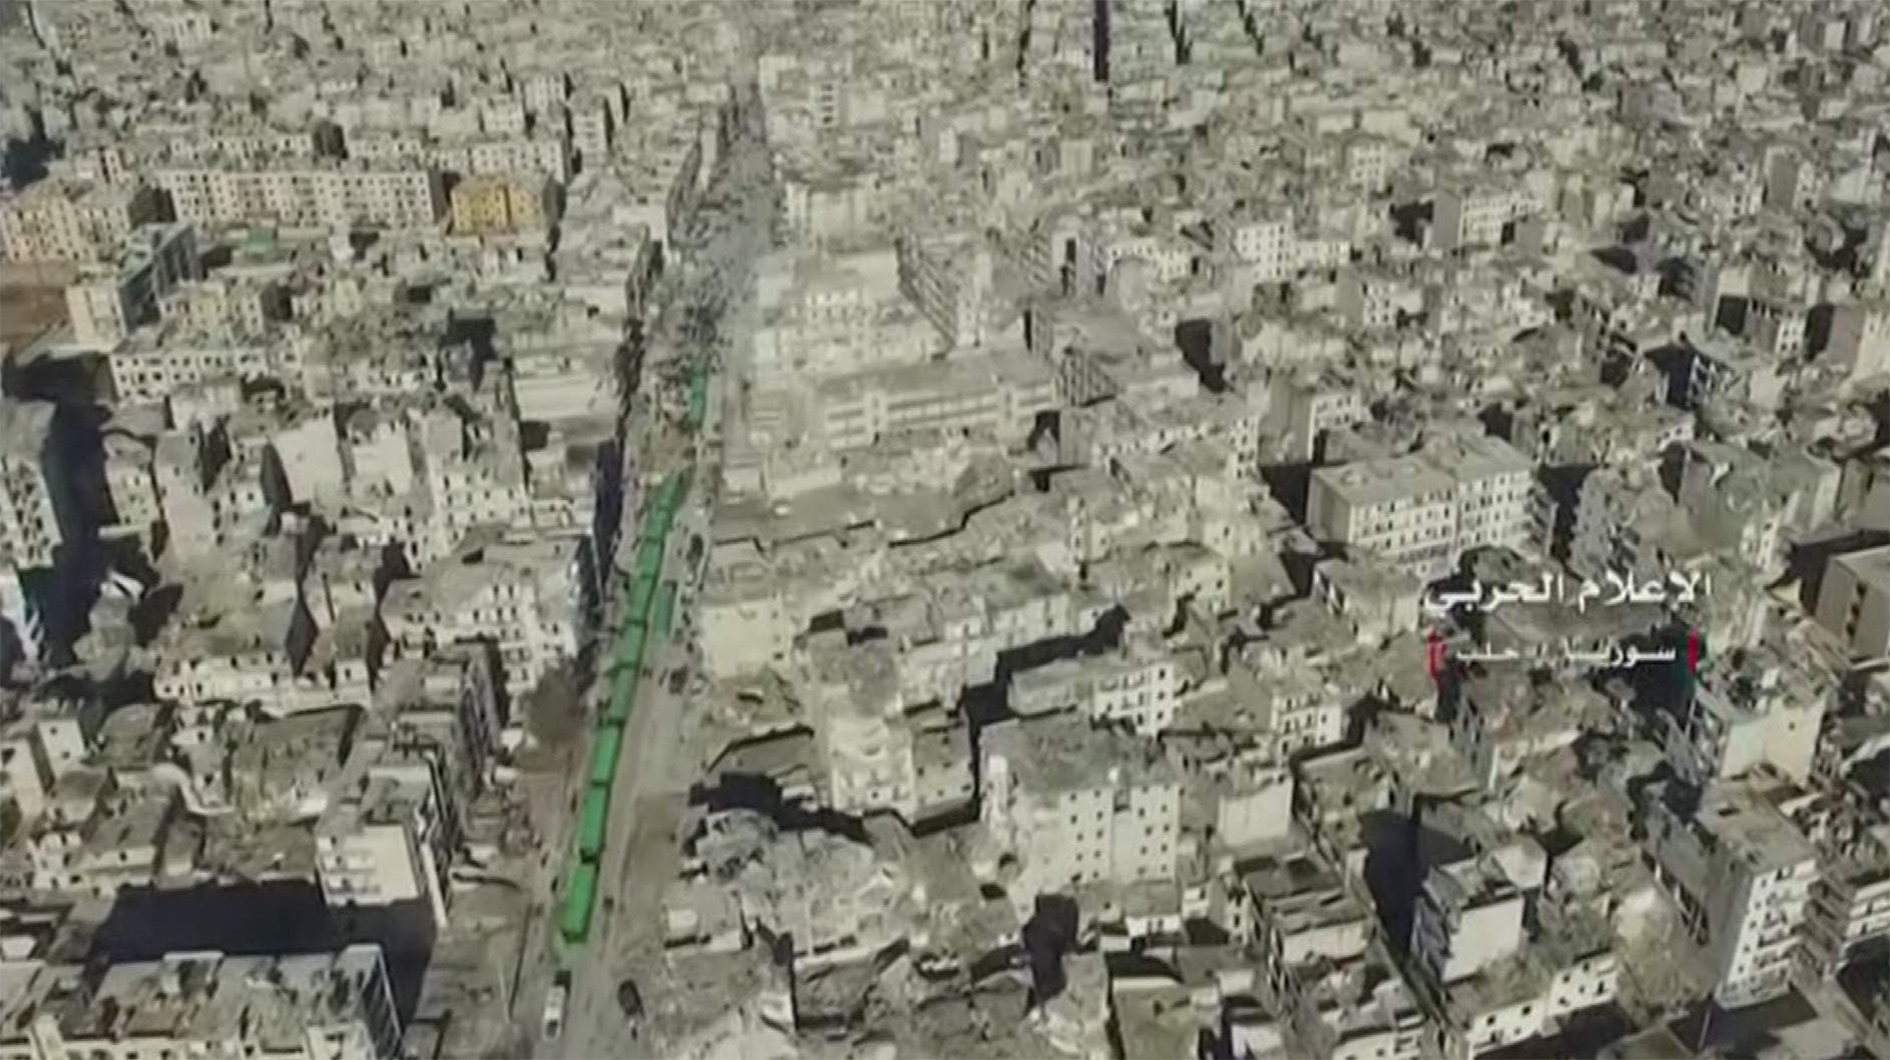 A still image from video taken 15 December 2016 over eastern Aleppo shows an operation to evacuate thousands of civilians and fighters in buses from Aleppo.